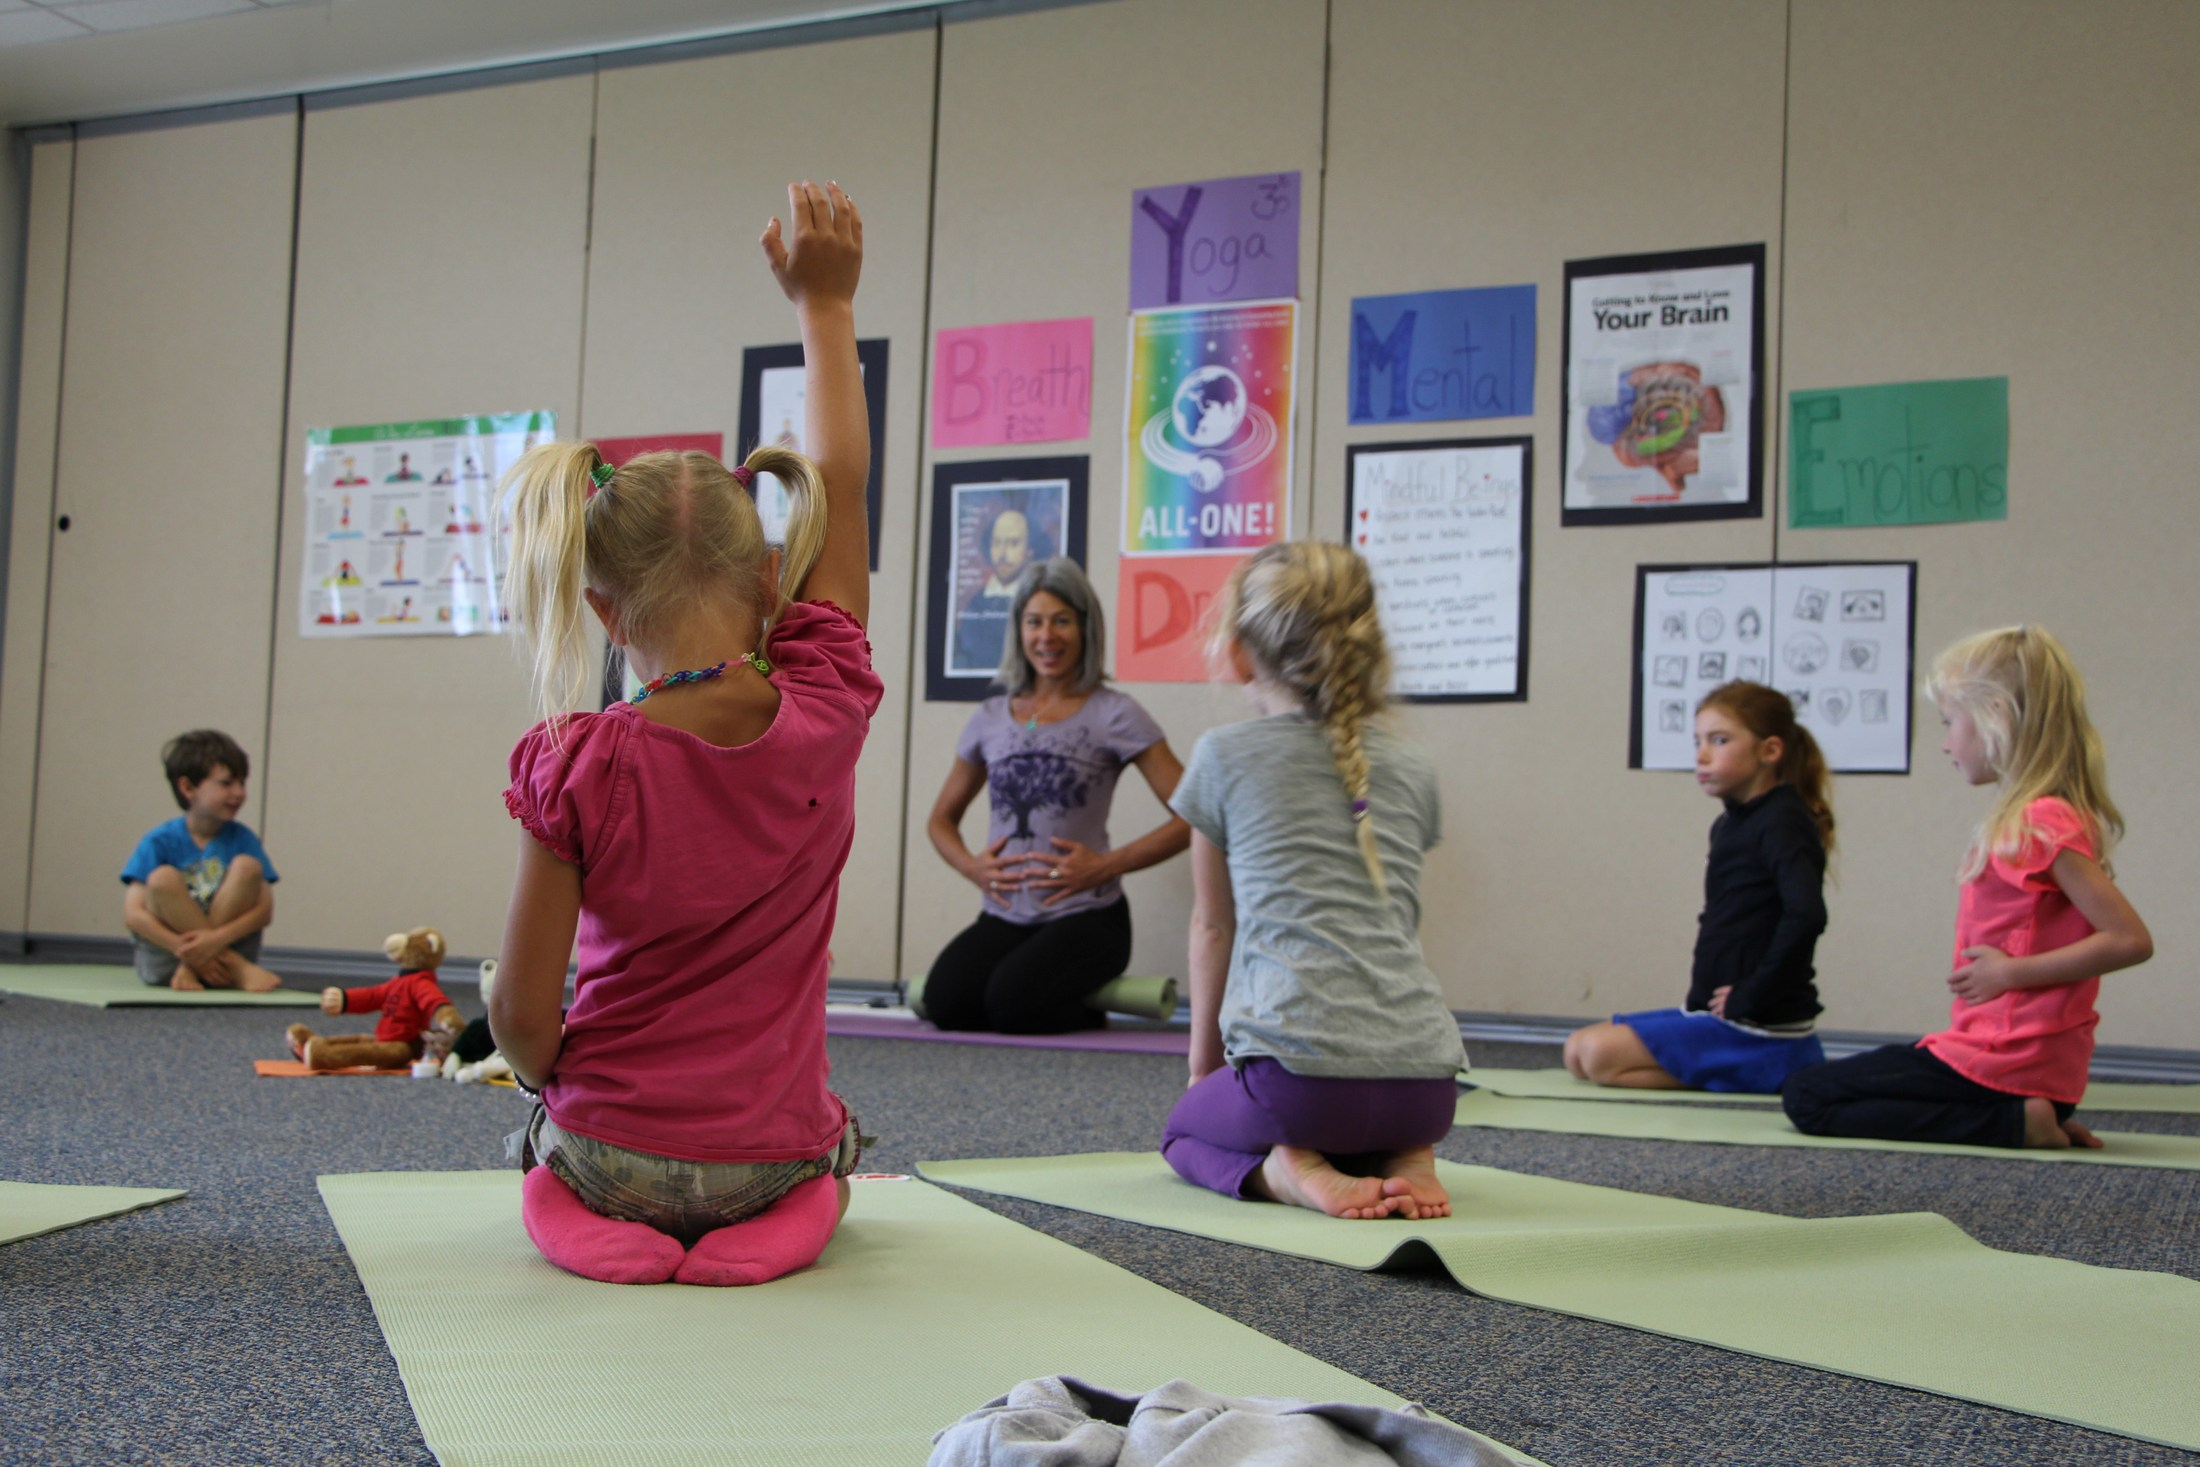 Students participate in yoga class at Shared School.